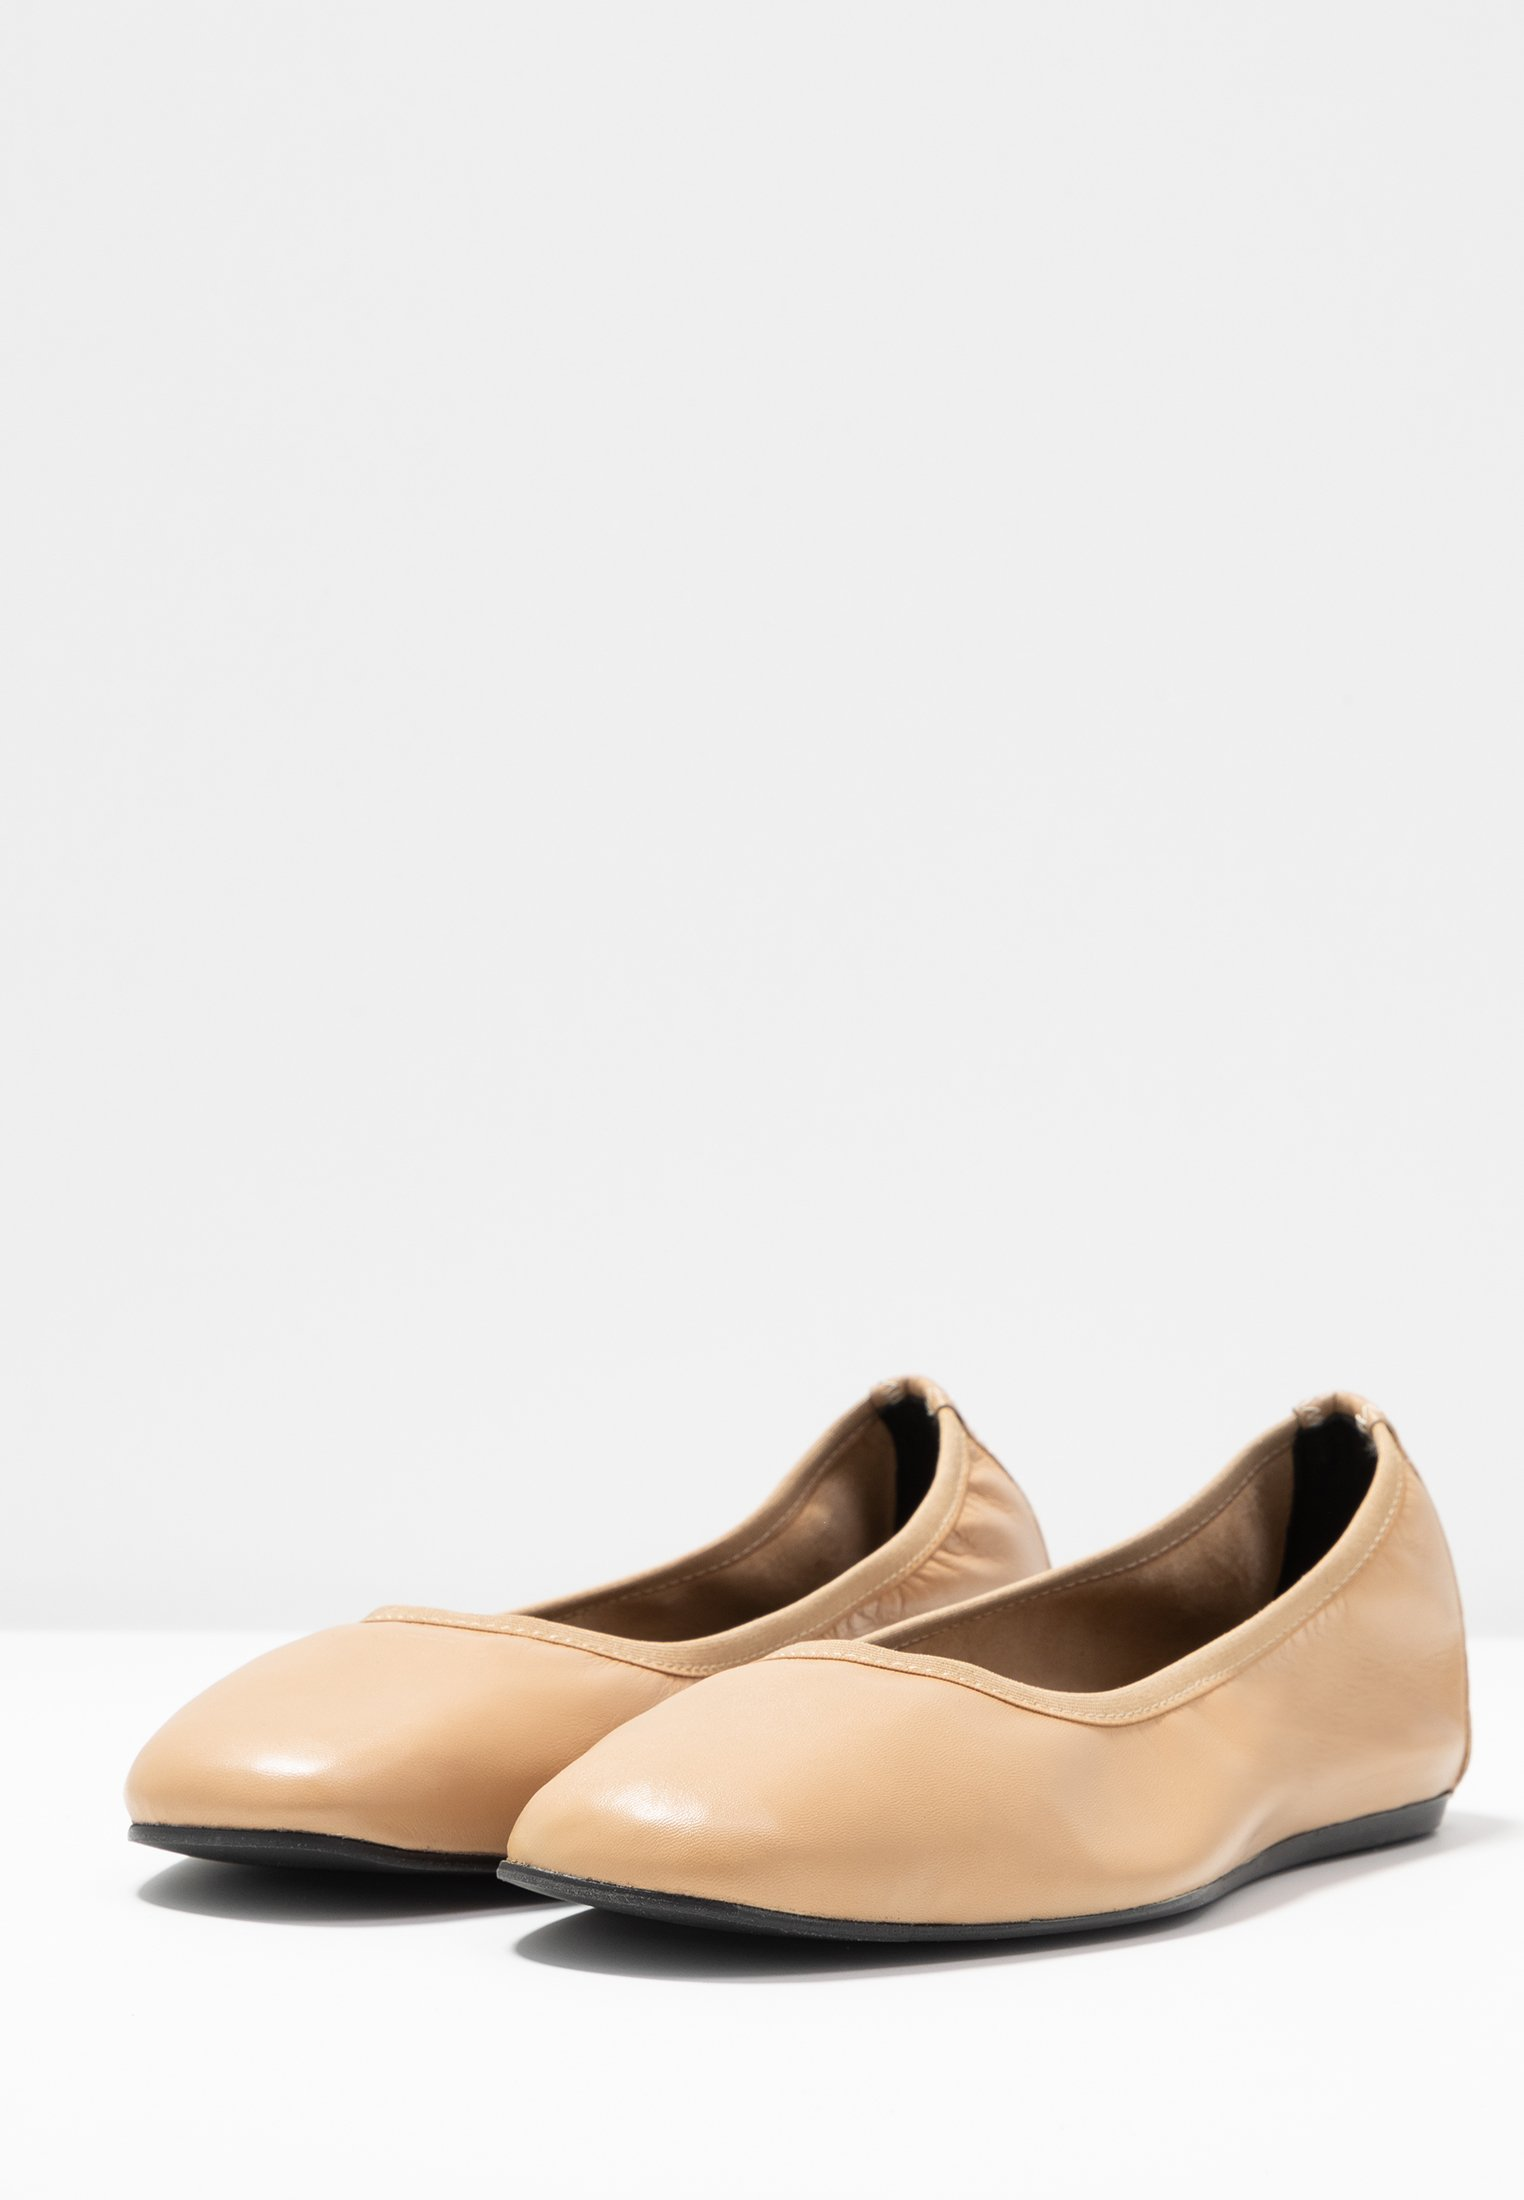 Filippa K Rey Flat - Klassischer Ballerina Honey Beige Black Friday